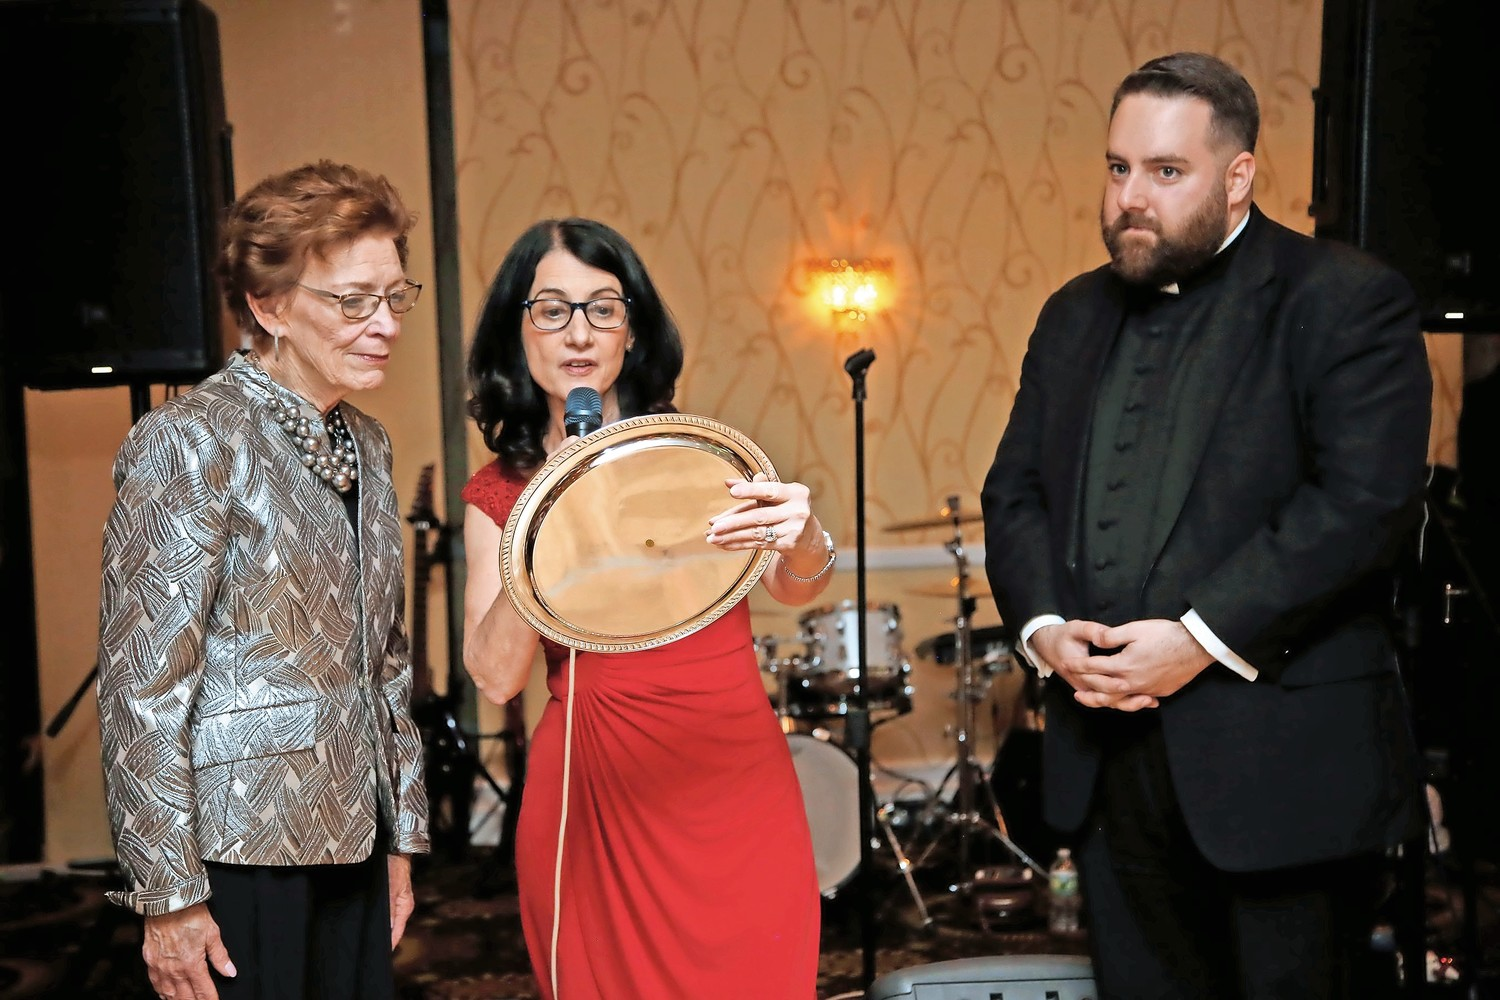 O.L.L. Principal Mary C. Murphy, middle, with the Rev. Michael Duffy, presented Maier with a platter.